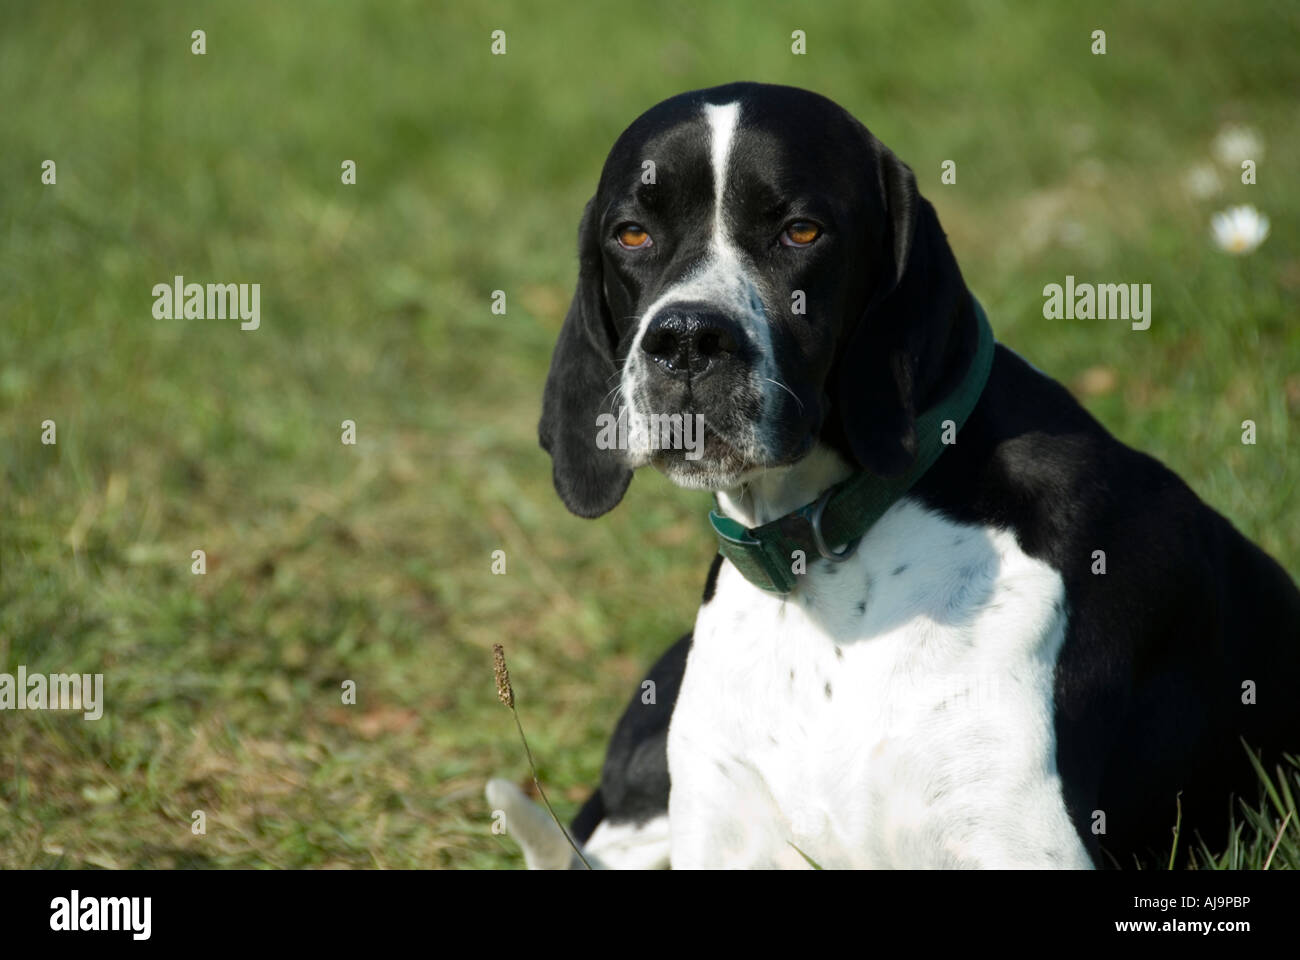 Black English Pointer Puppy Photo of an Eng...